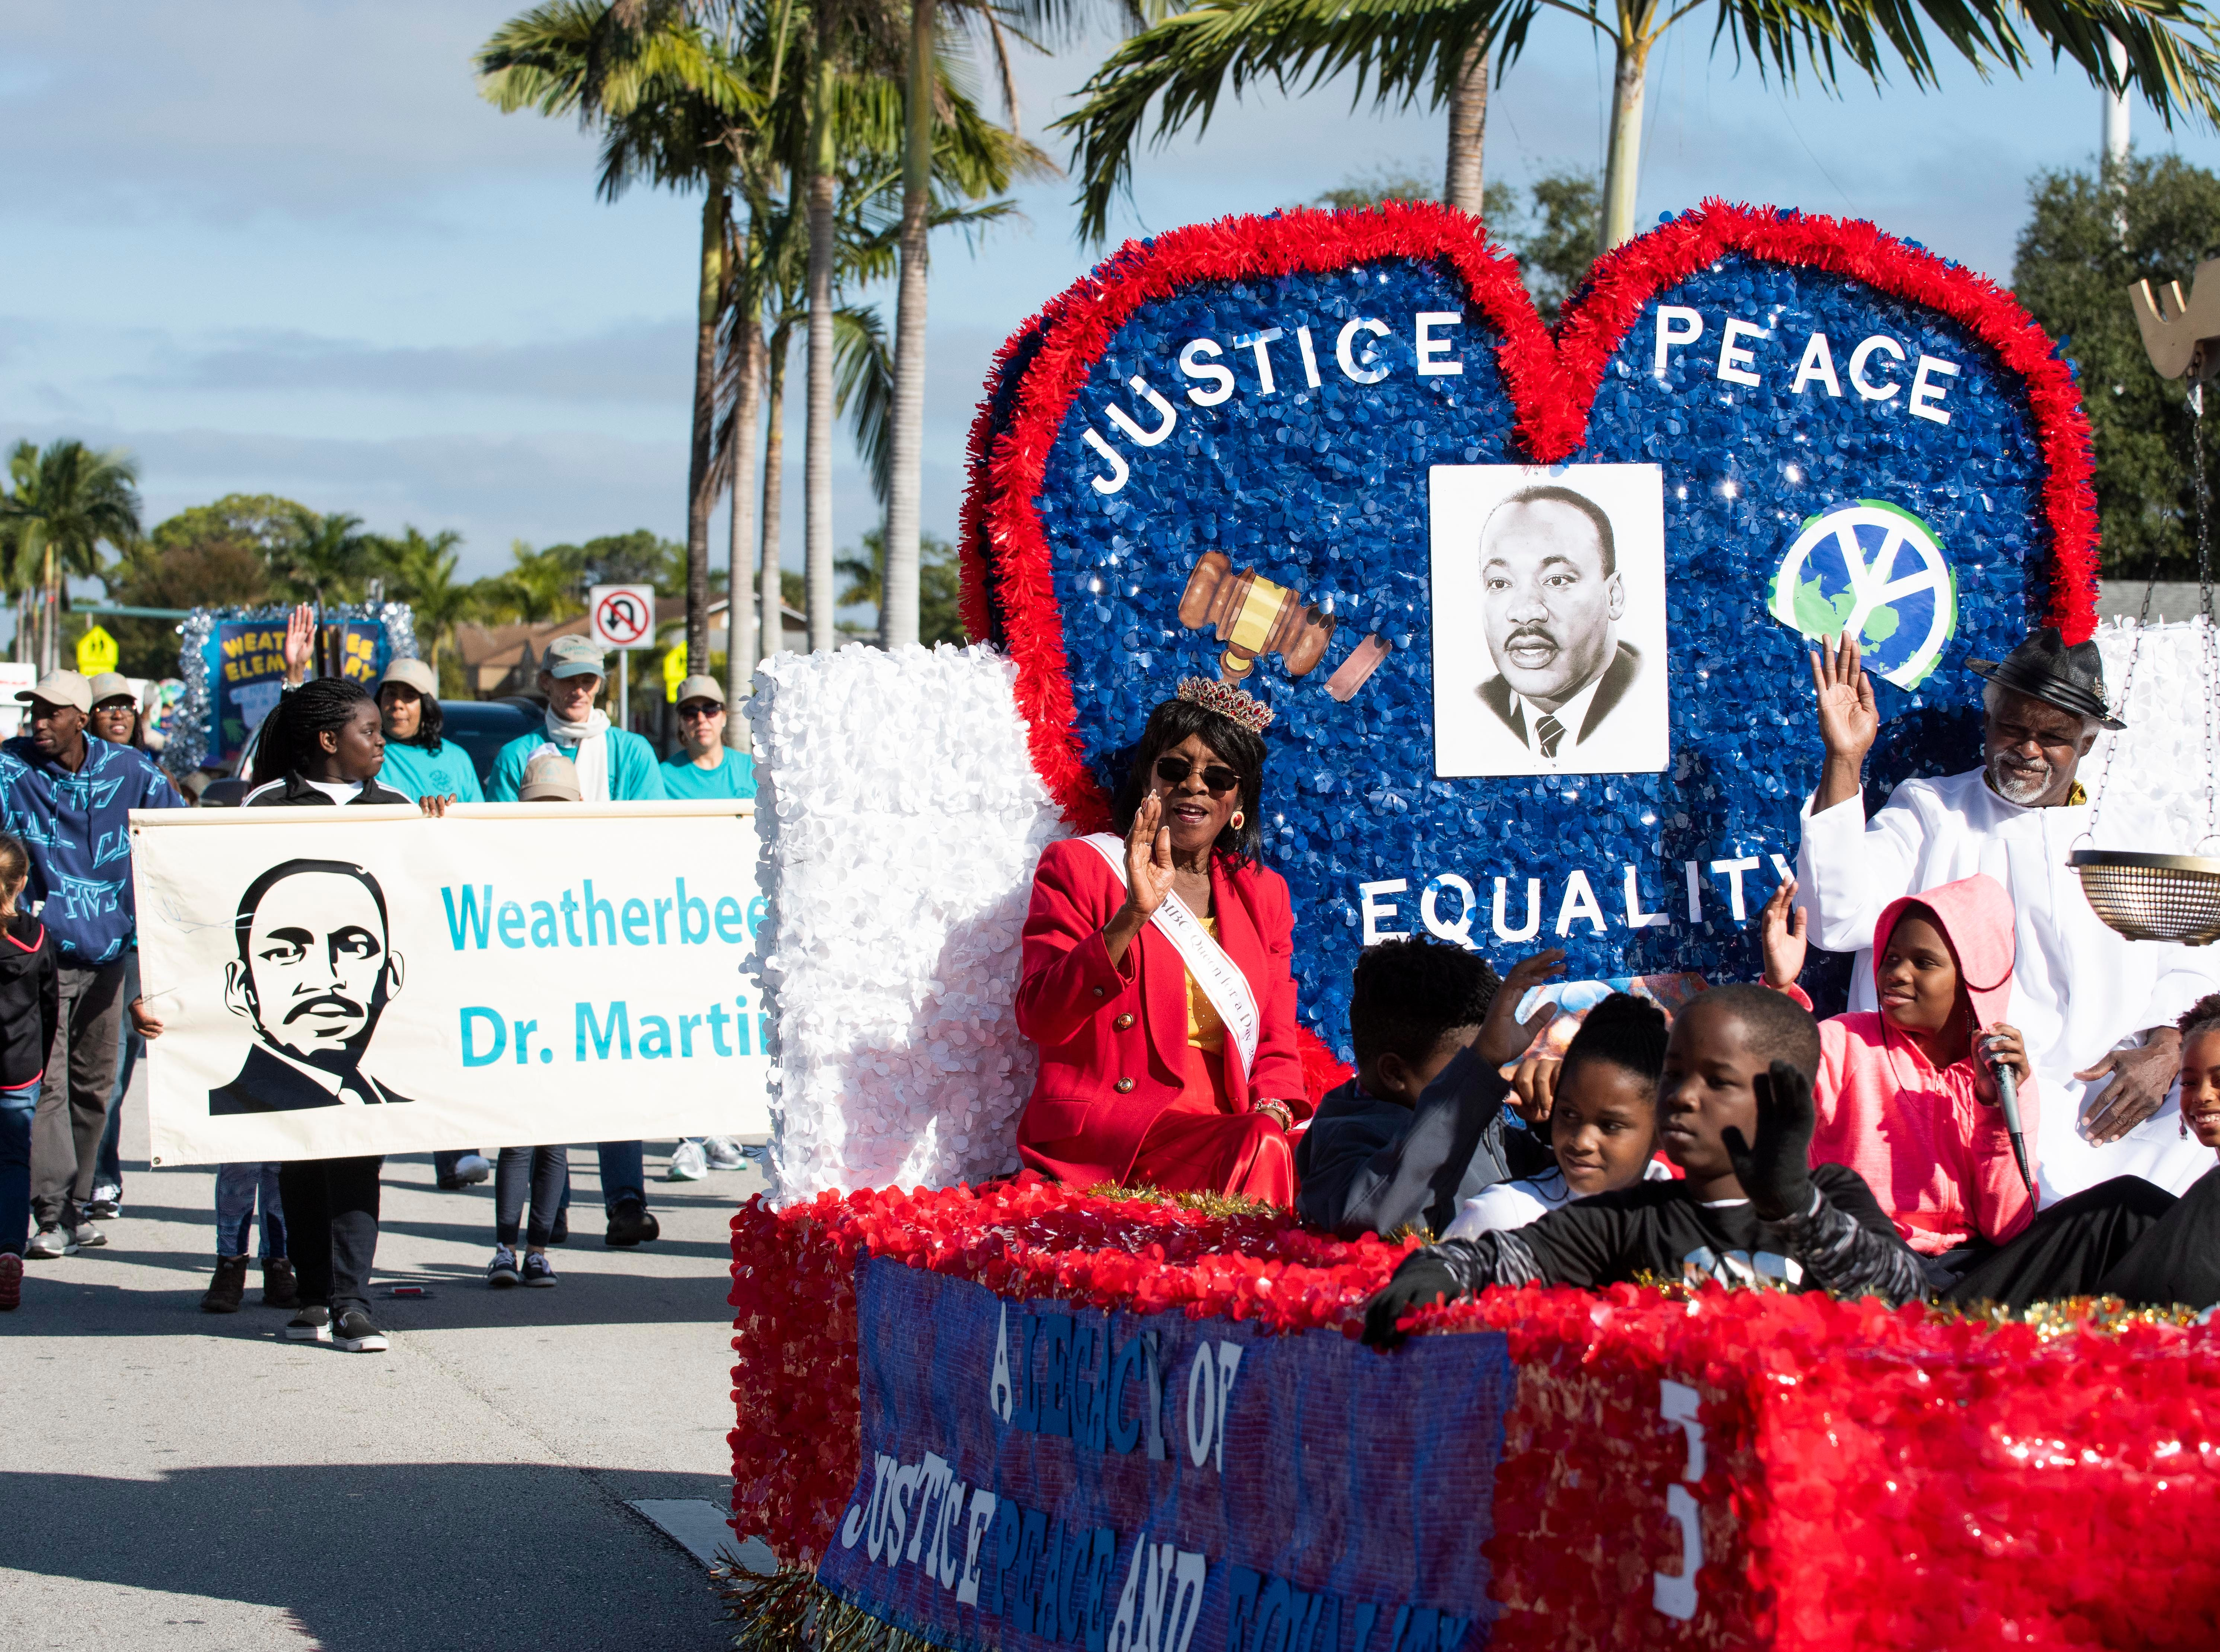 Virginia McMillon (center) celebrates the annual Dr. Martin Luther King Jr. Grand Parade by riding on the Morning Star Missionary Baptist Church float on Monday, Jan. 21, 2019, in Fort Pierce. The parade began at Avenue I and Dr. Martin Luther King Boulevard and ended at Lawnwood Stadium.